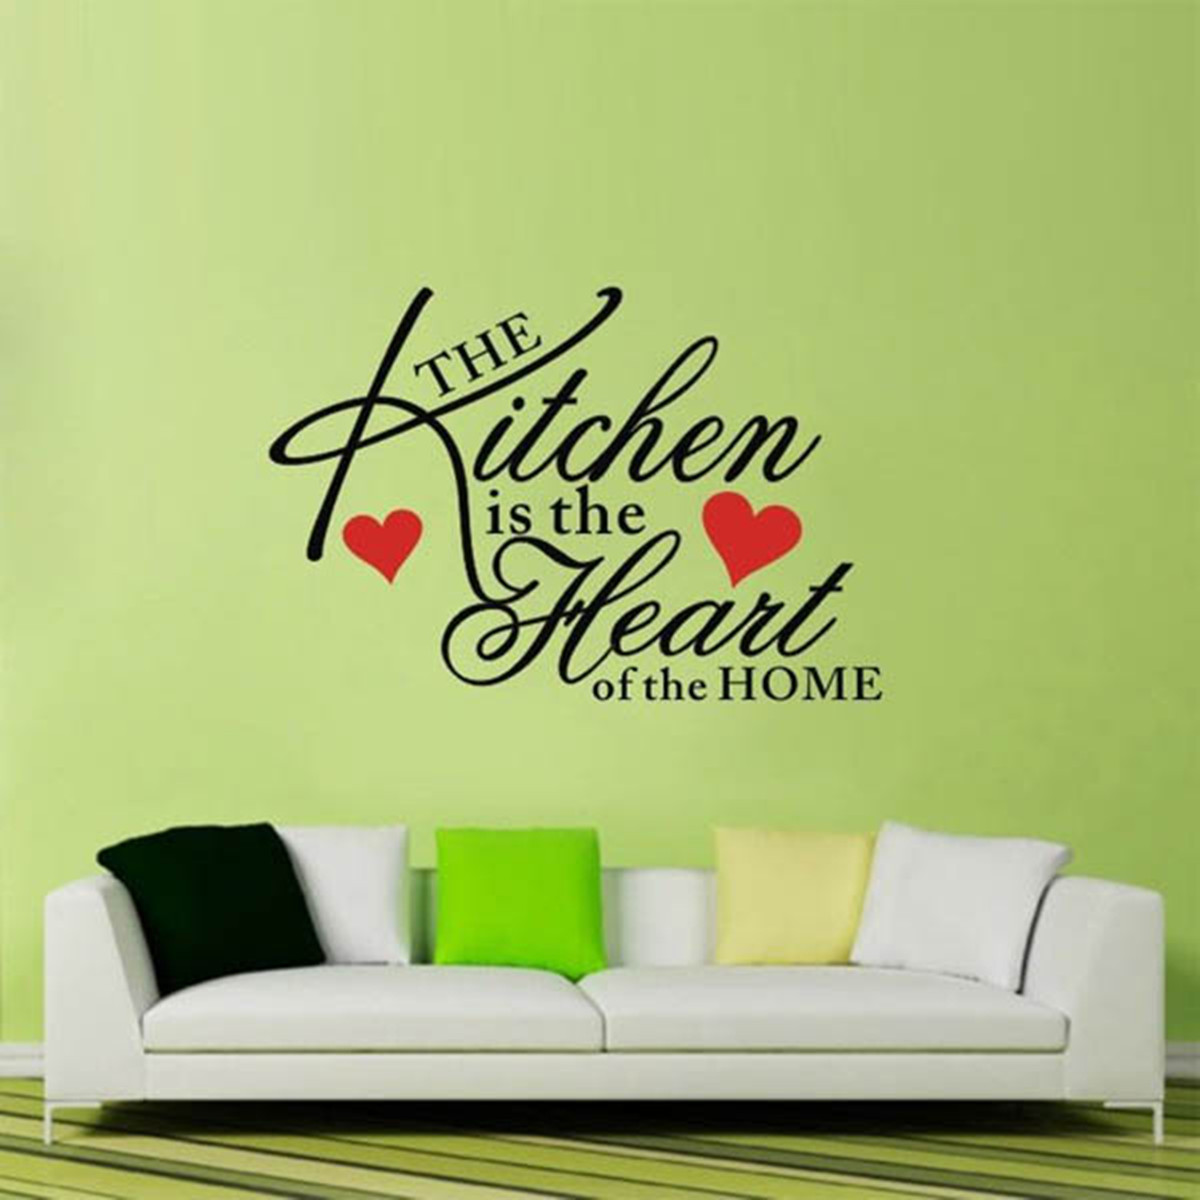 Kitchen Home Heart Removable Vinyl Wall Stickers DIY Decor